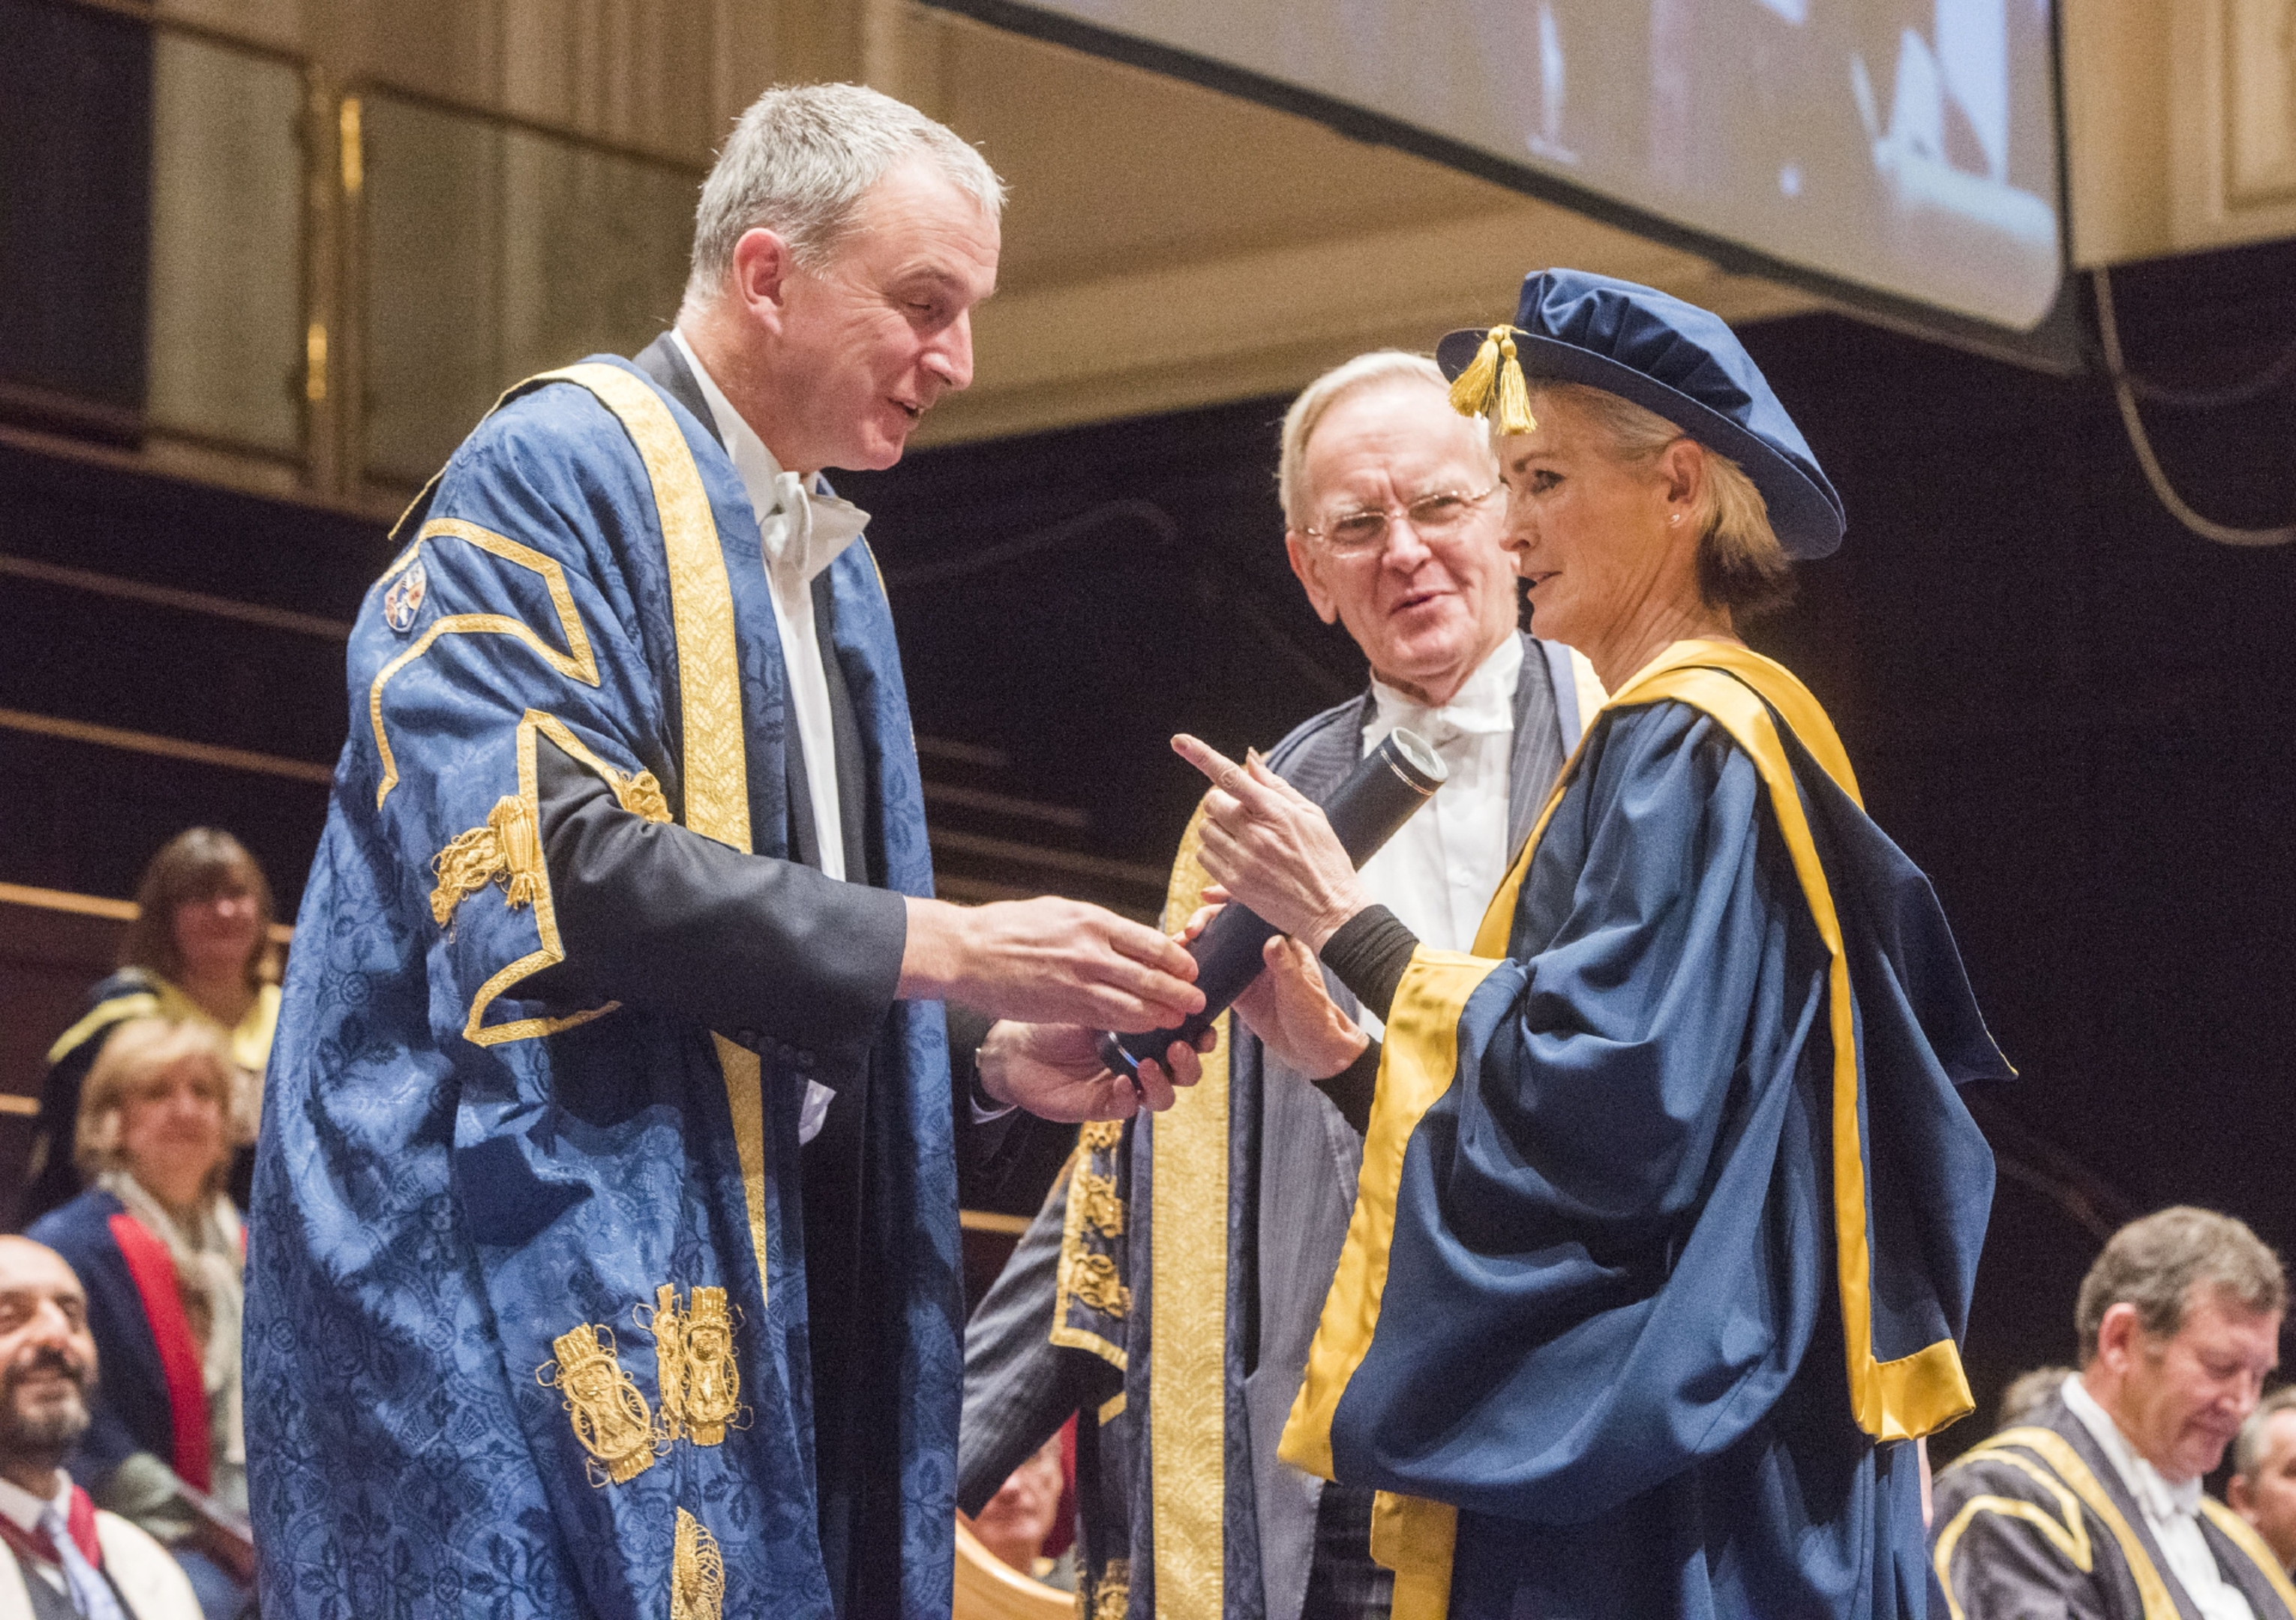 Abertay principal Nigel Seaton and Chancelor Lord Cullen present Judy Murray with her honorary degree from Abertay University in Dundee